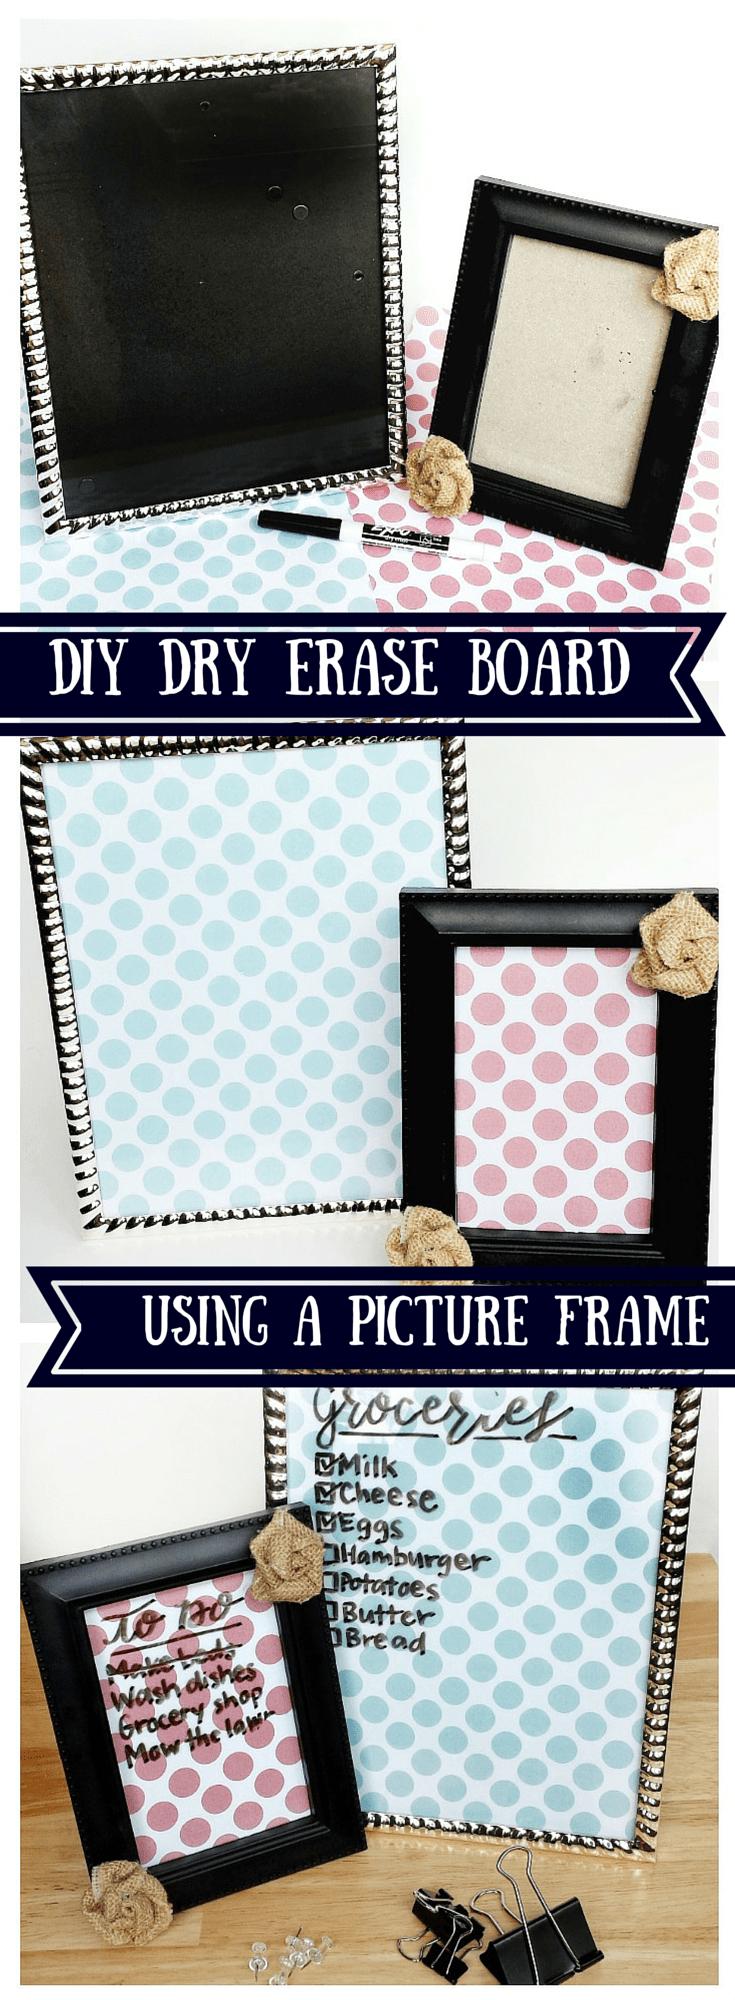 DIY Dry Erase Frames Using a Picture Frame